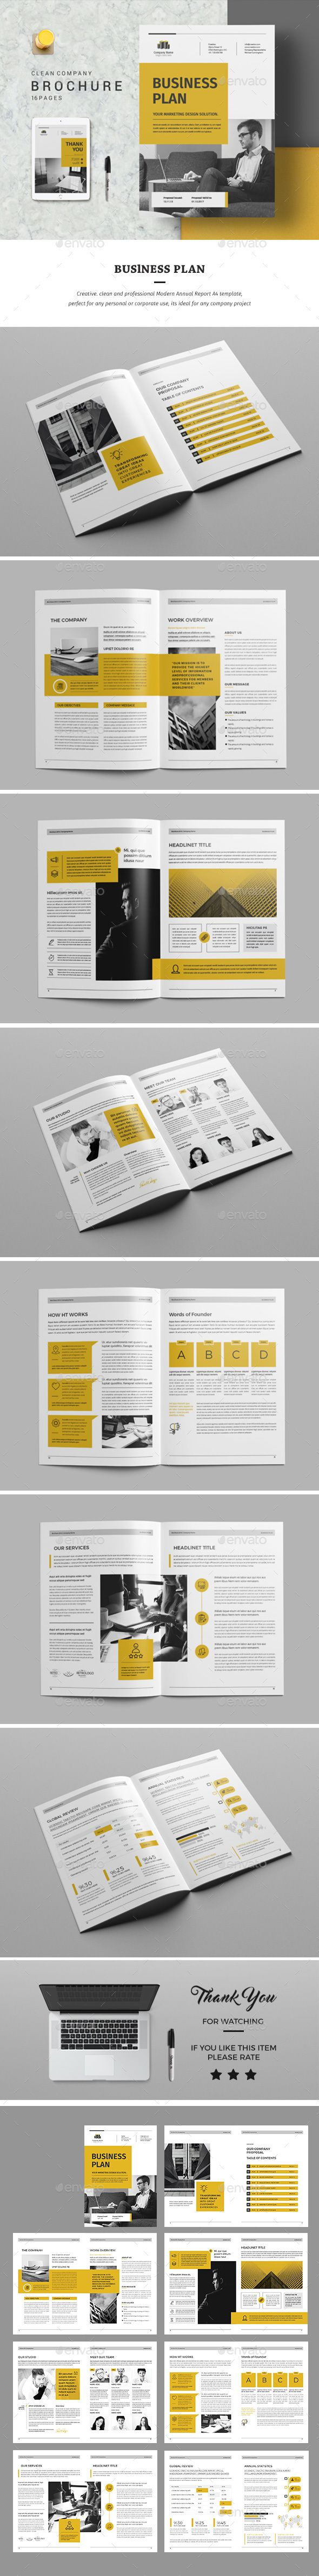 Business plan indesign indd elegant design download https business plan by moverick cheaphphosting Gallery